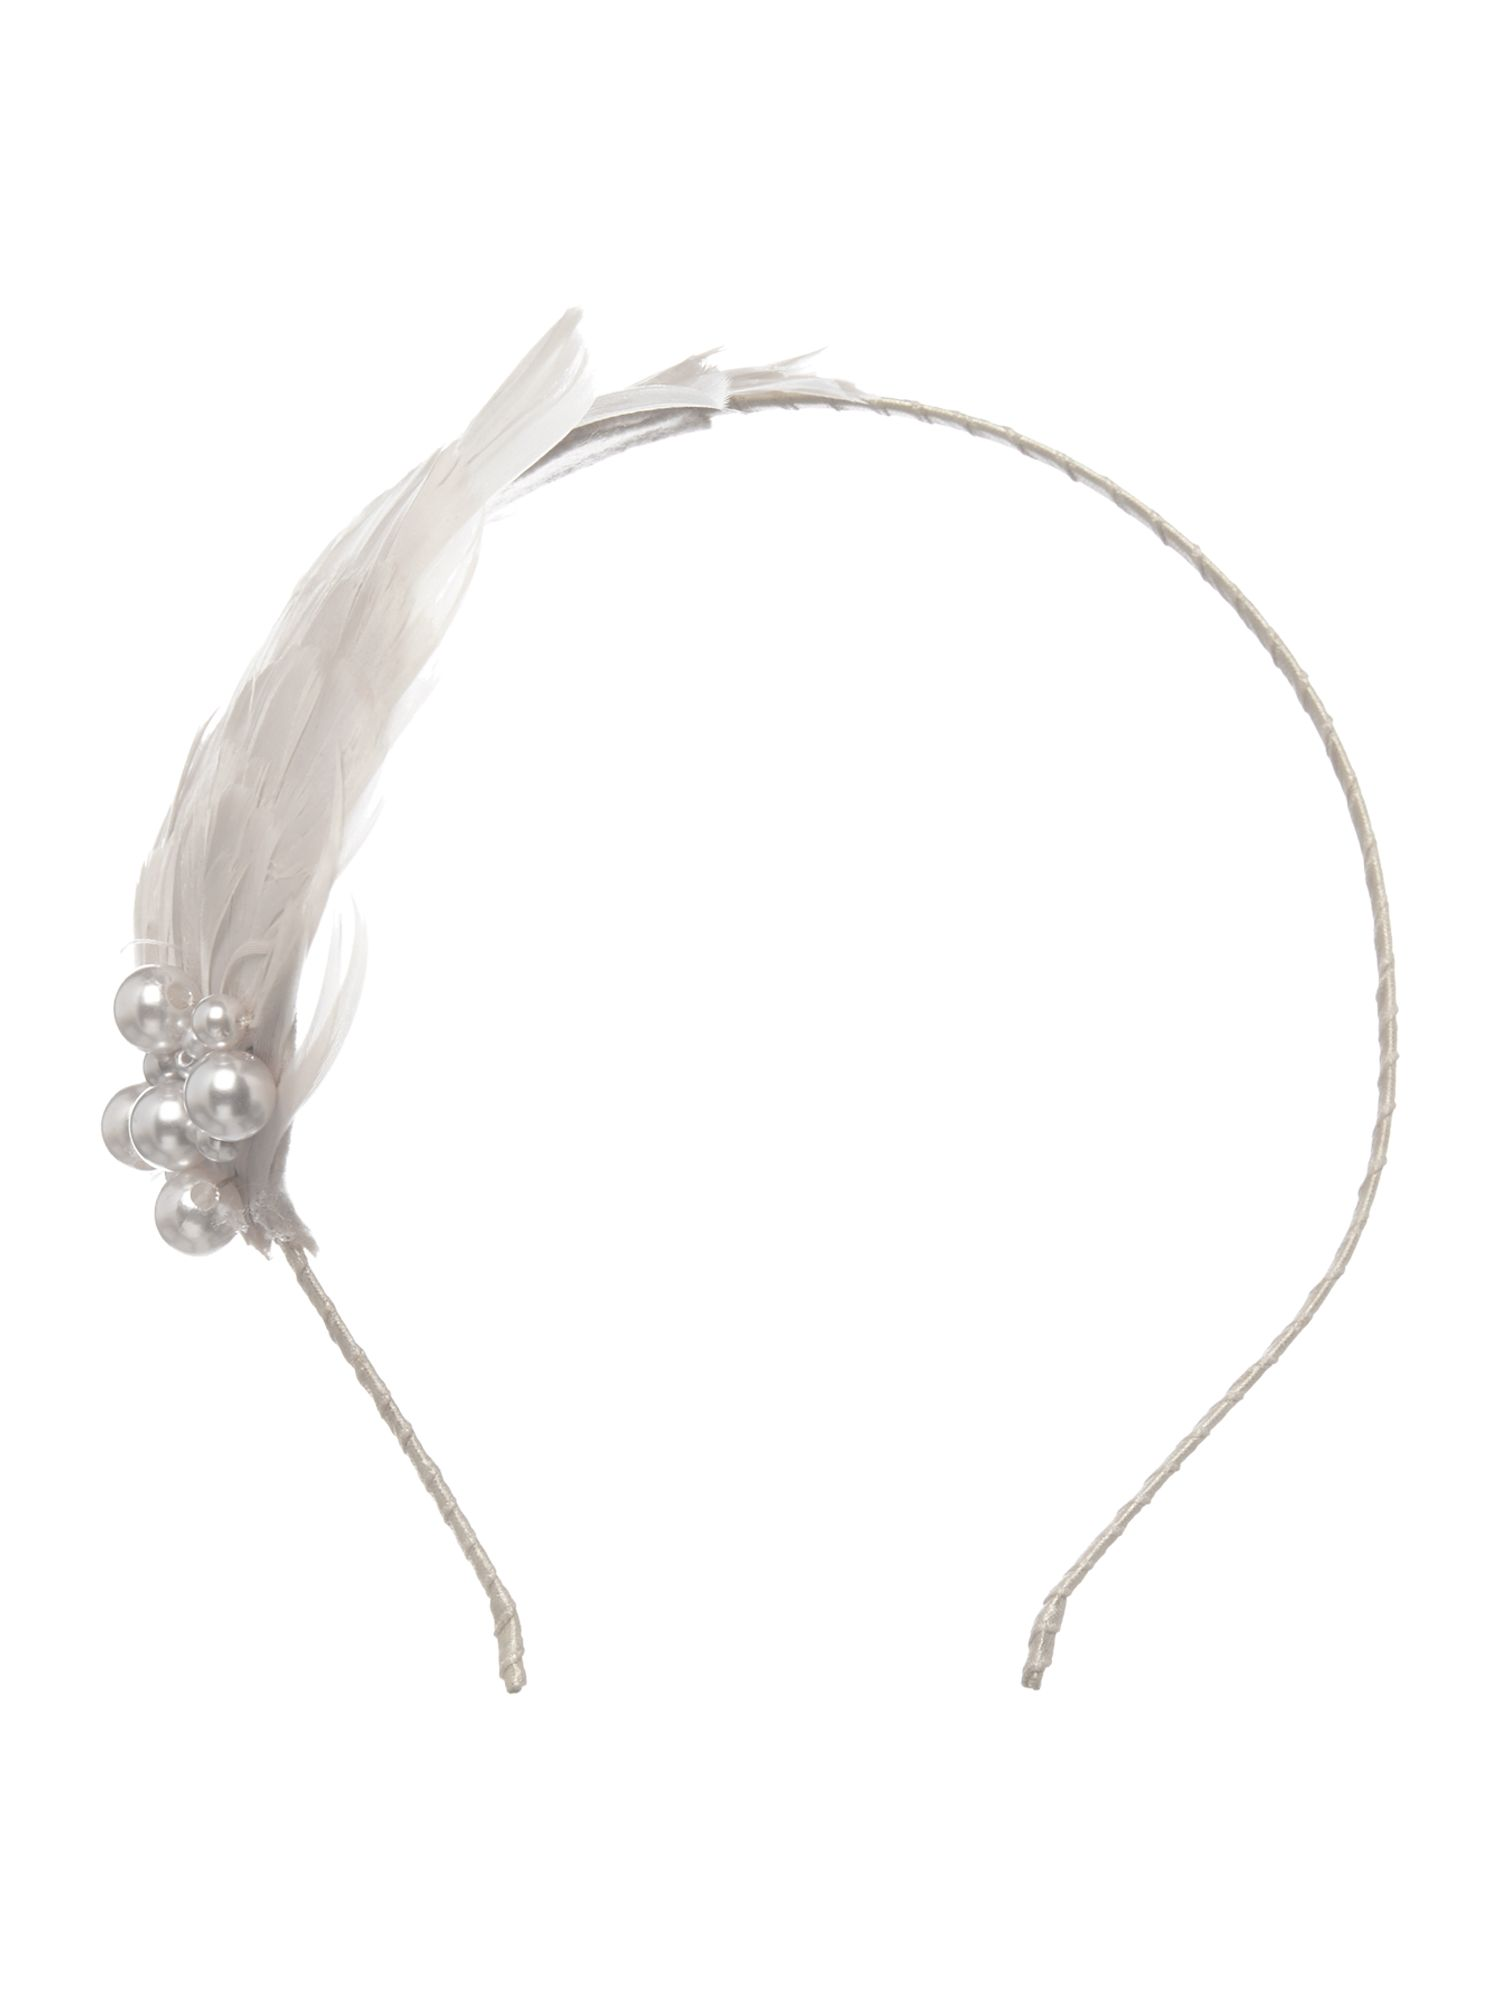 Fan feather headband